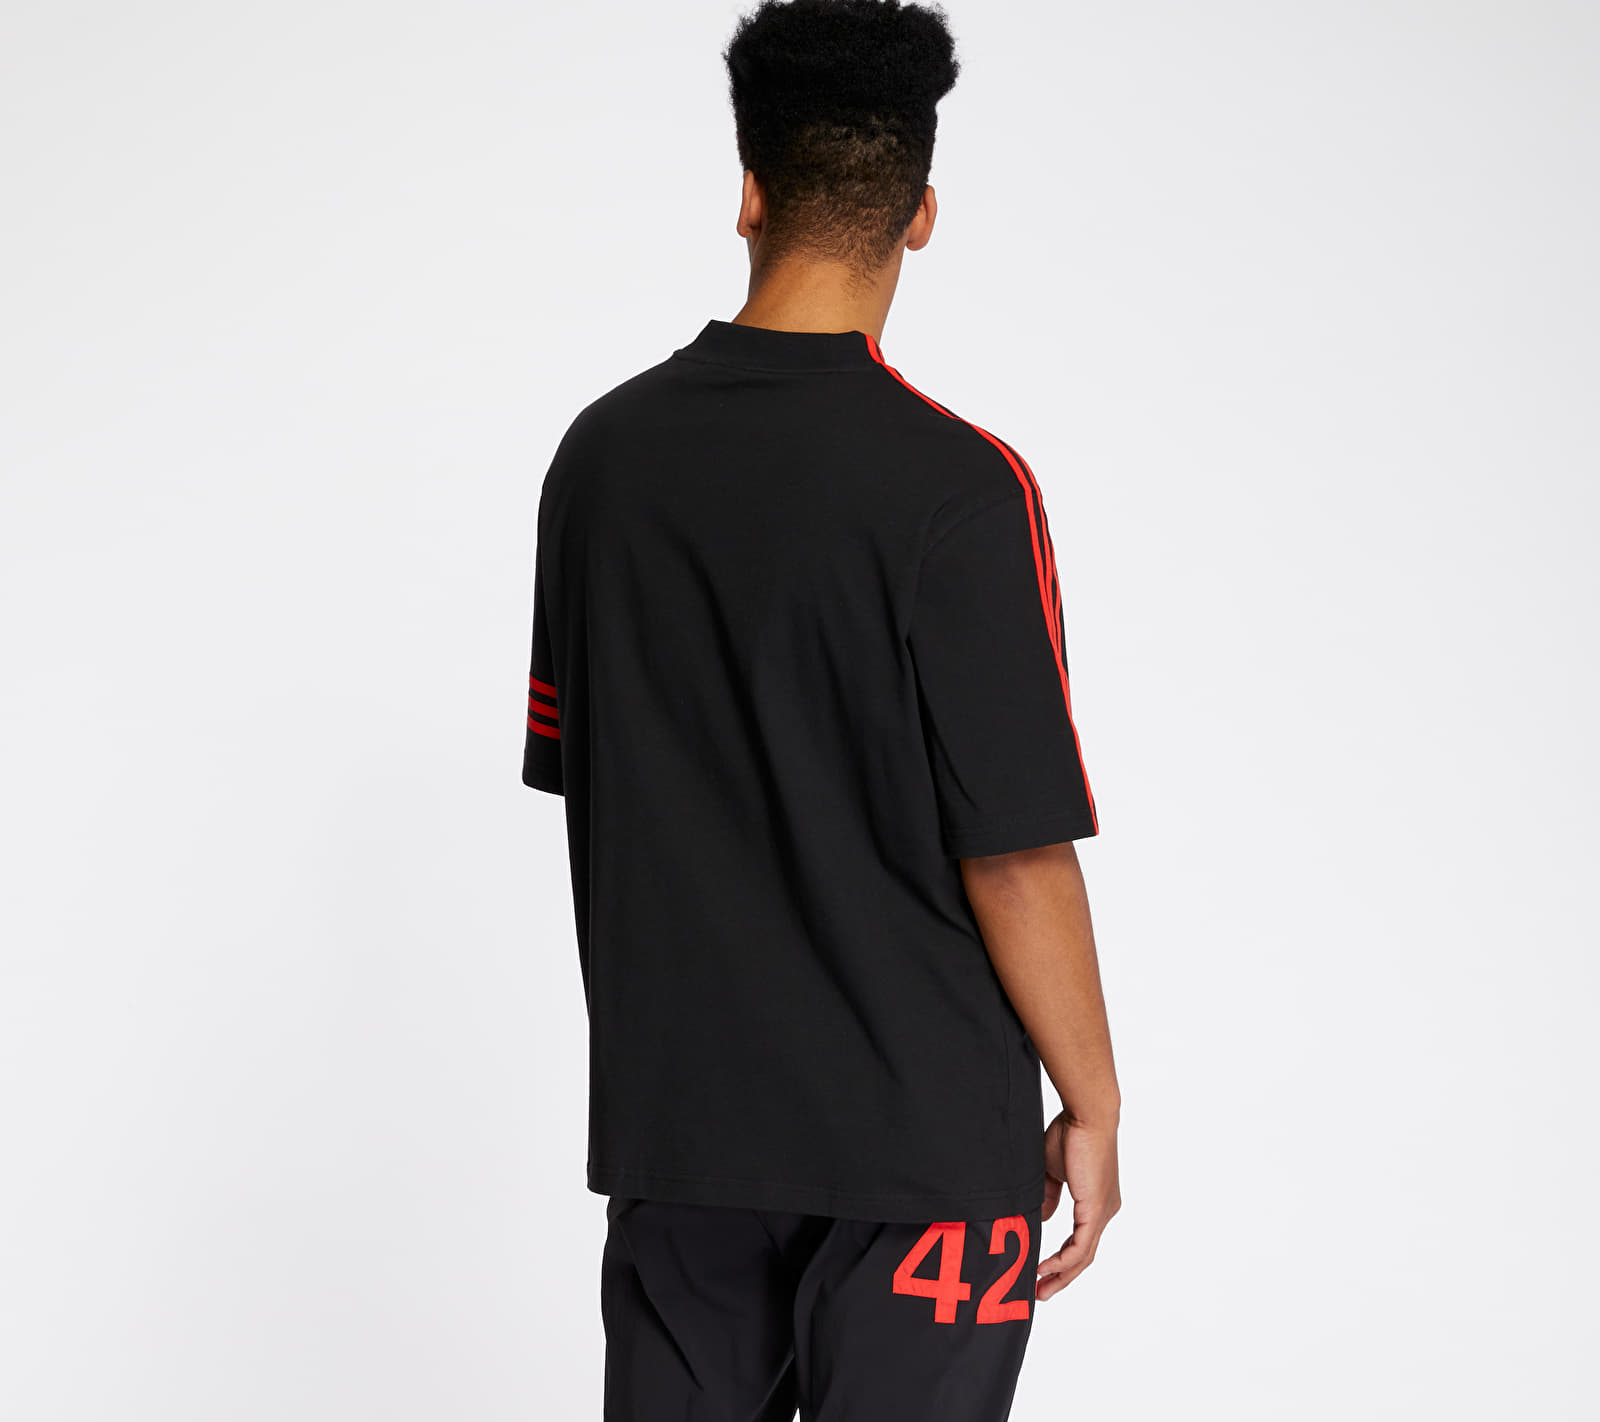 adidas x 424 Vocal Tee Black/ Red